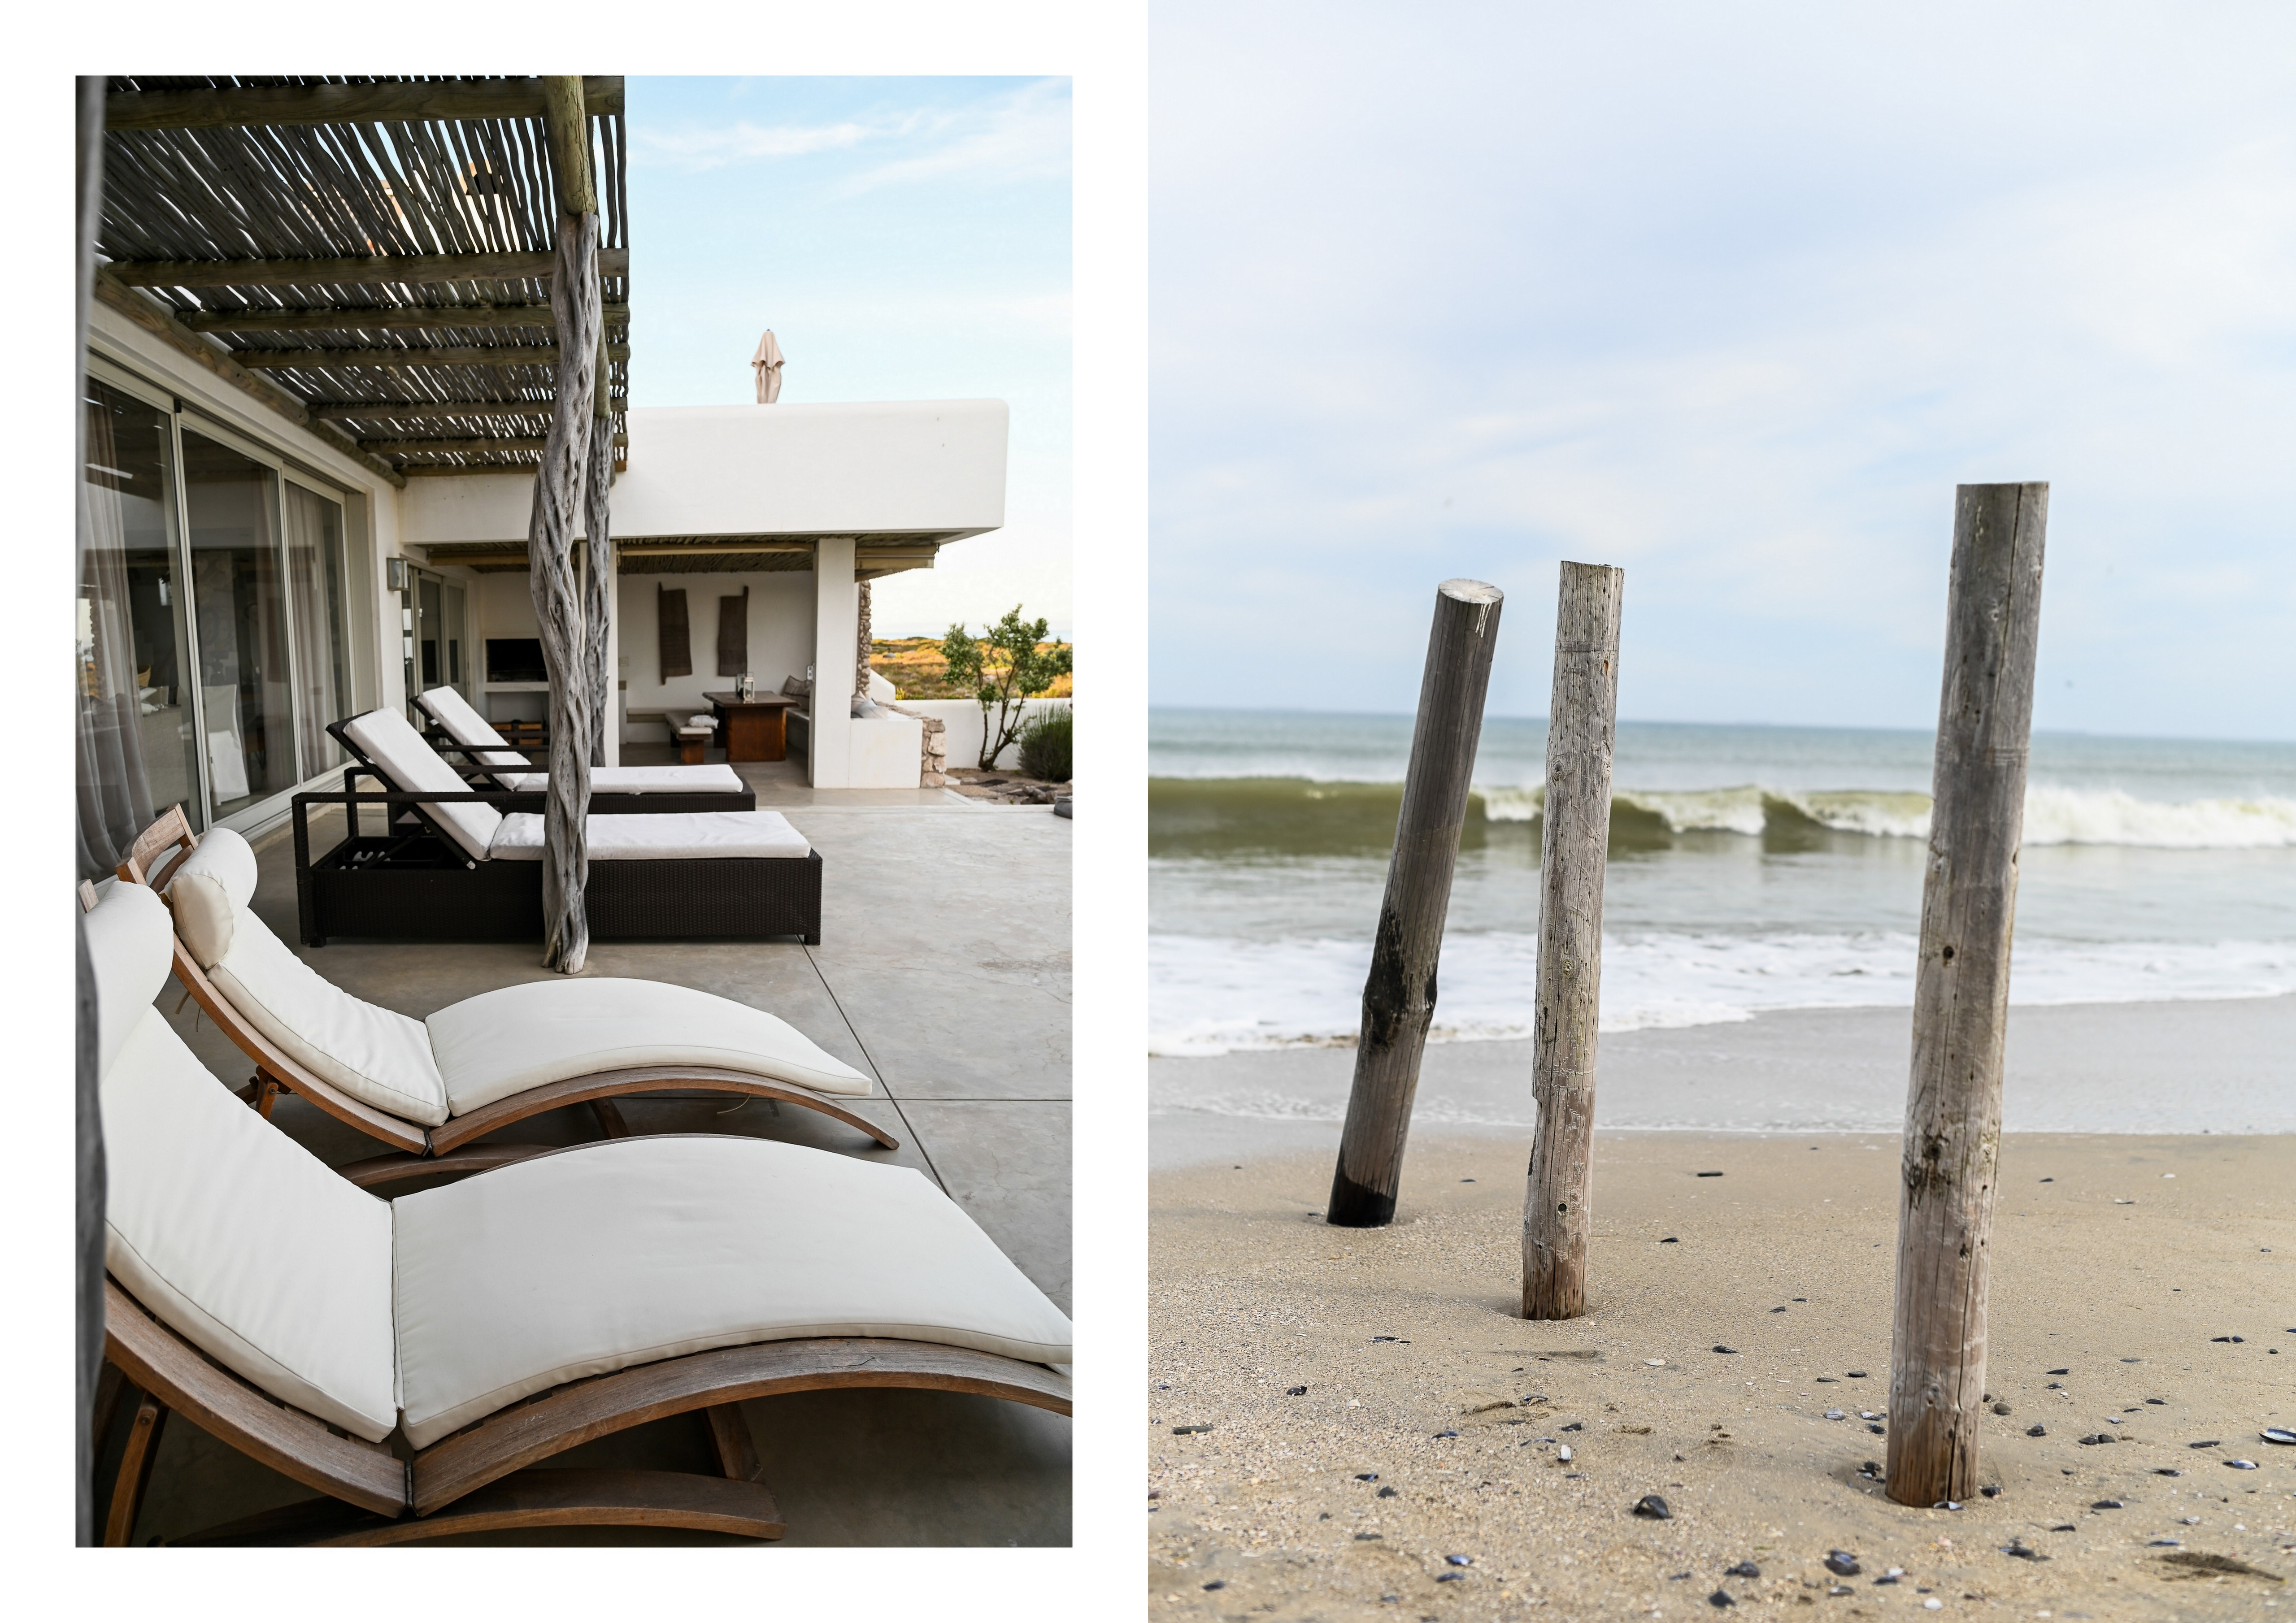 BEACH HOUSE BLISS AT CASA BLU'